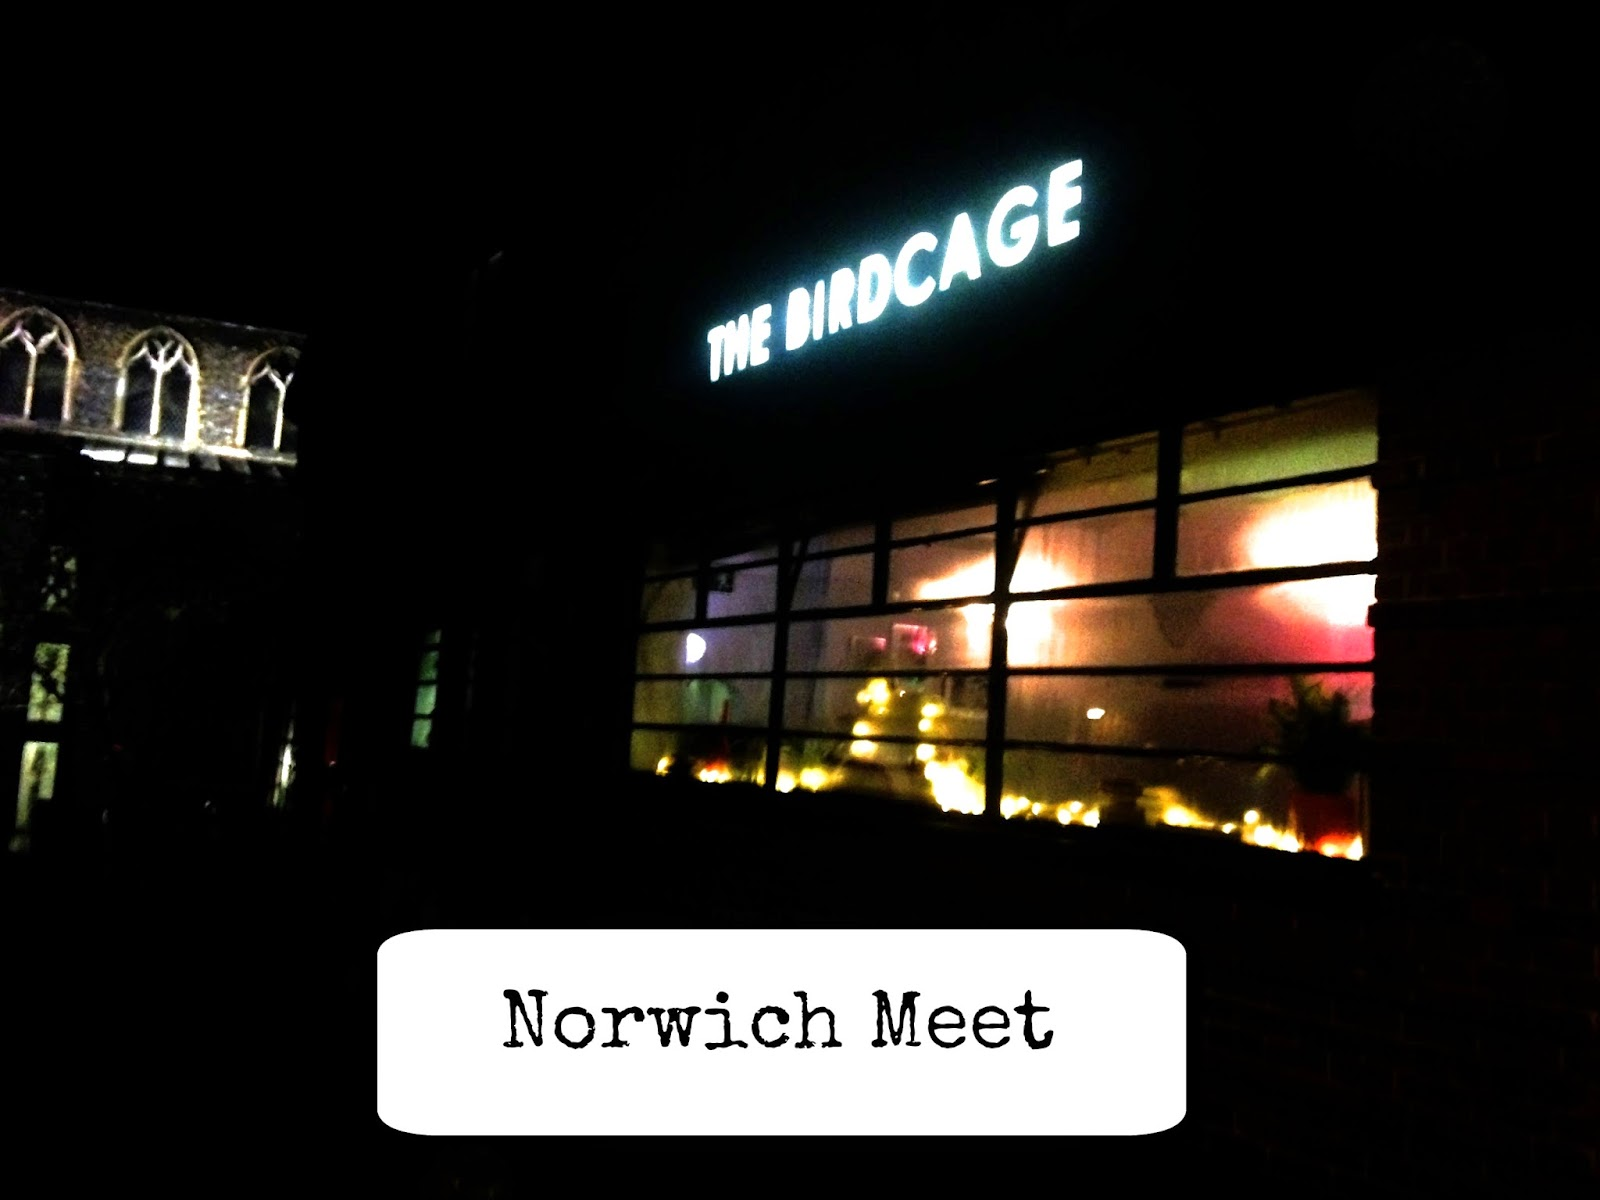 The Norwich Meet